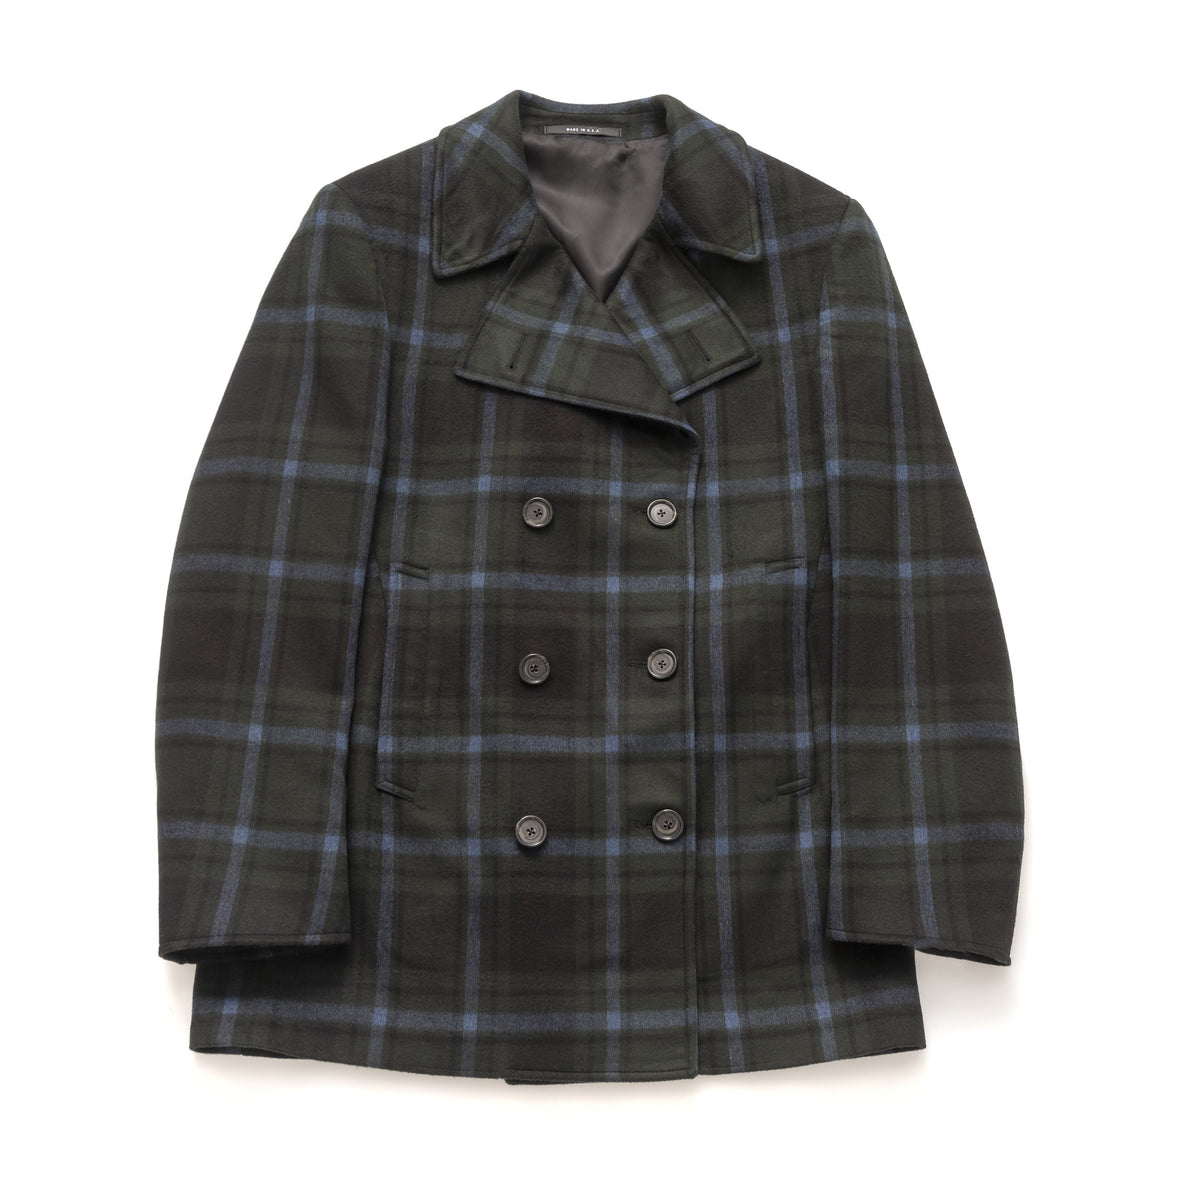 Pea Coat - Green Super Plaid